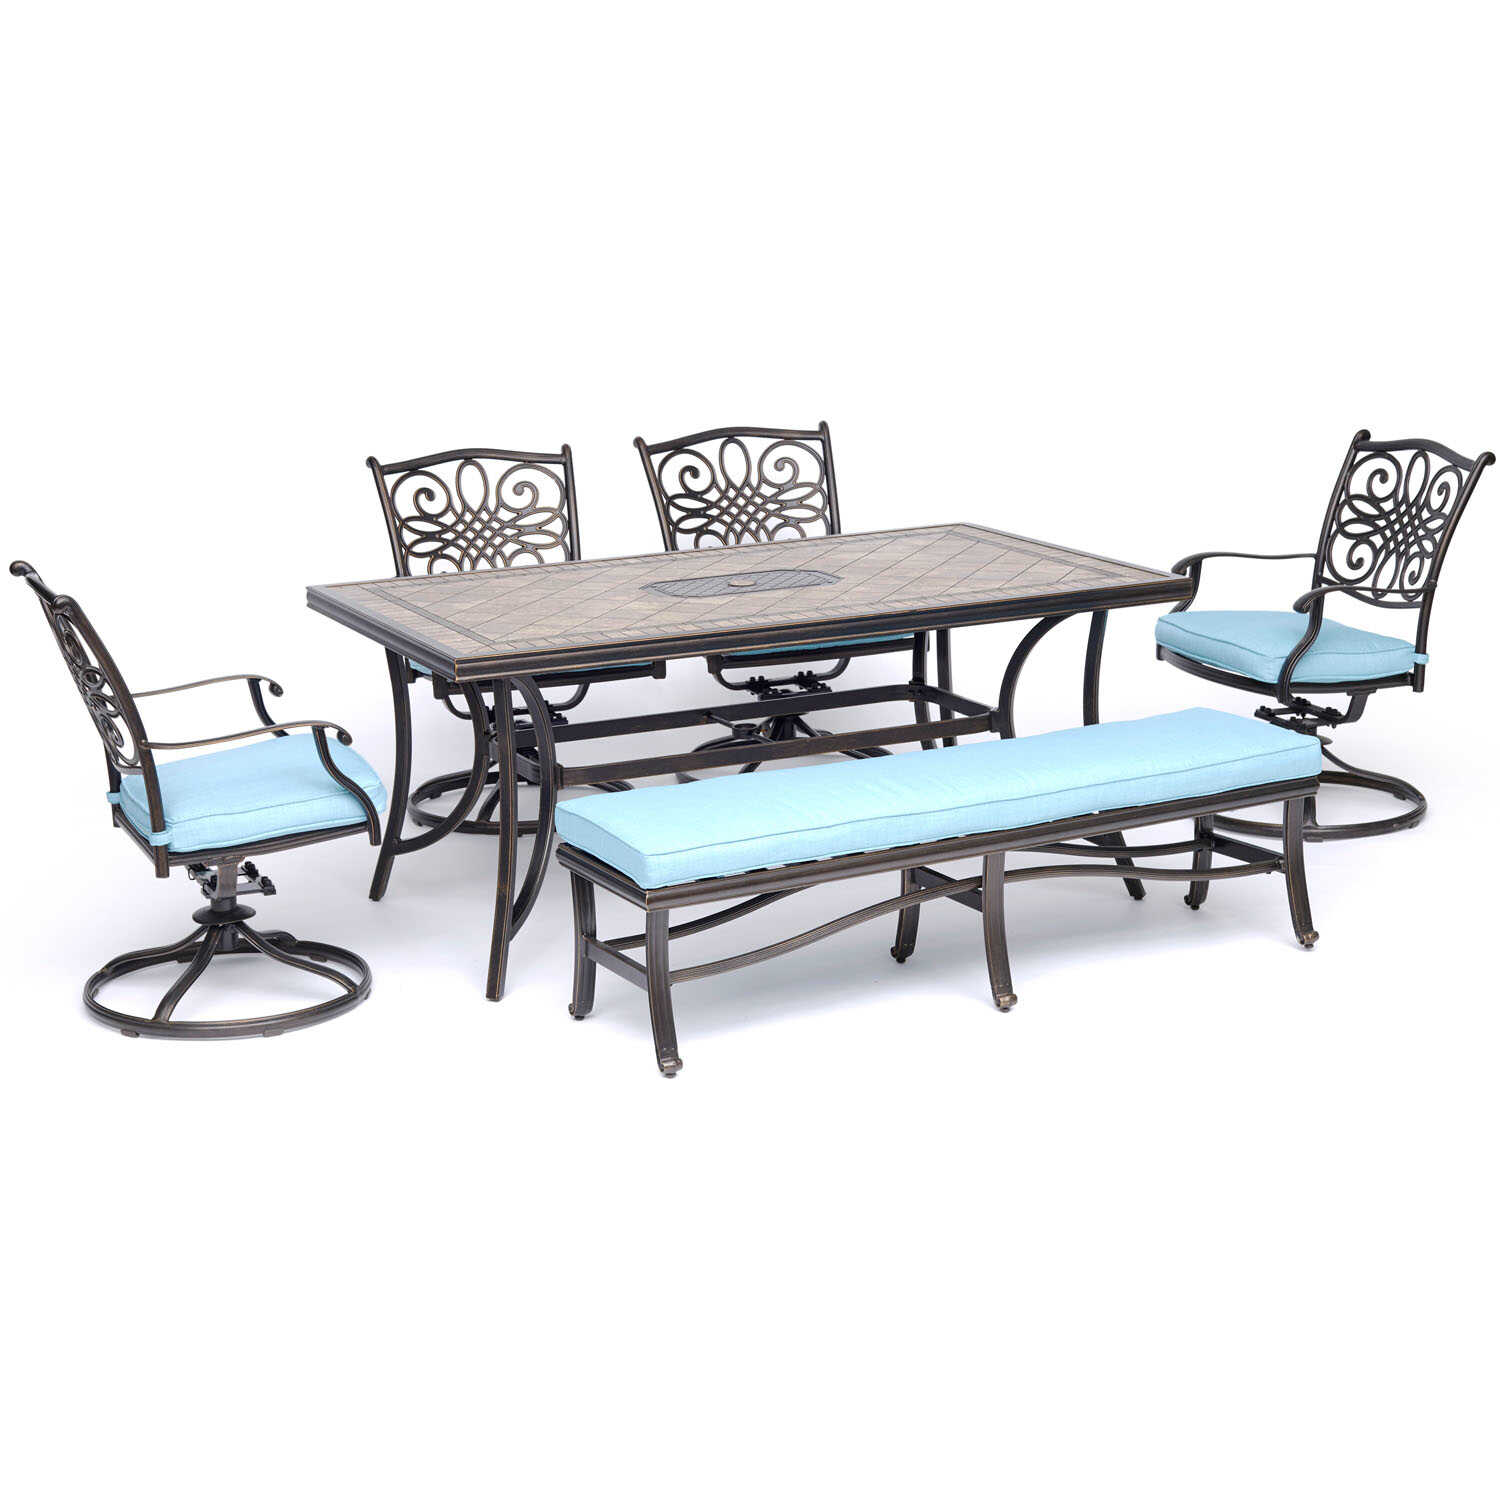 Hanover  Monaco  6 pc. Oil Rubbed Bronze  Aluminum  Dining Patio Set  Blue